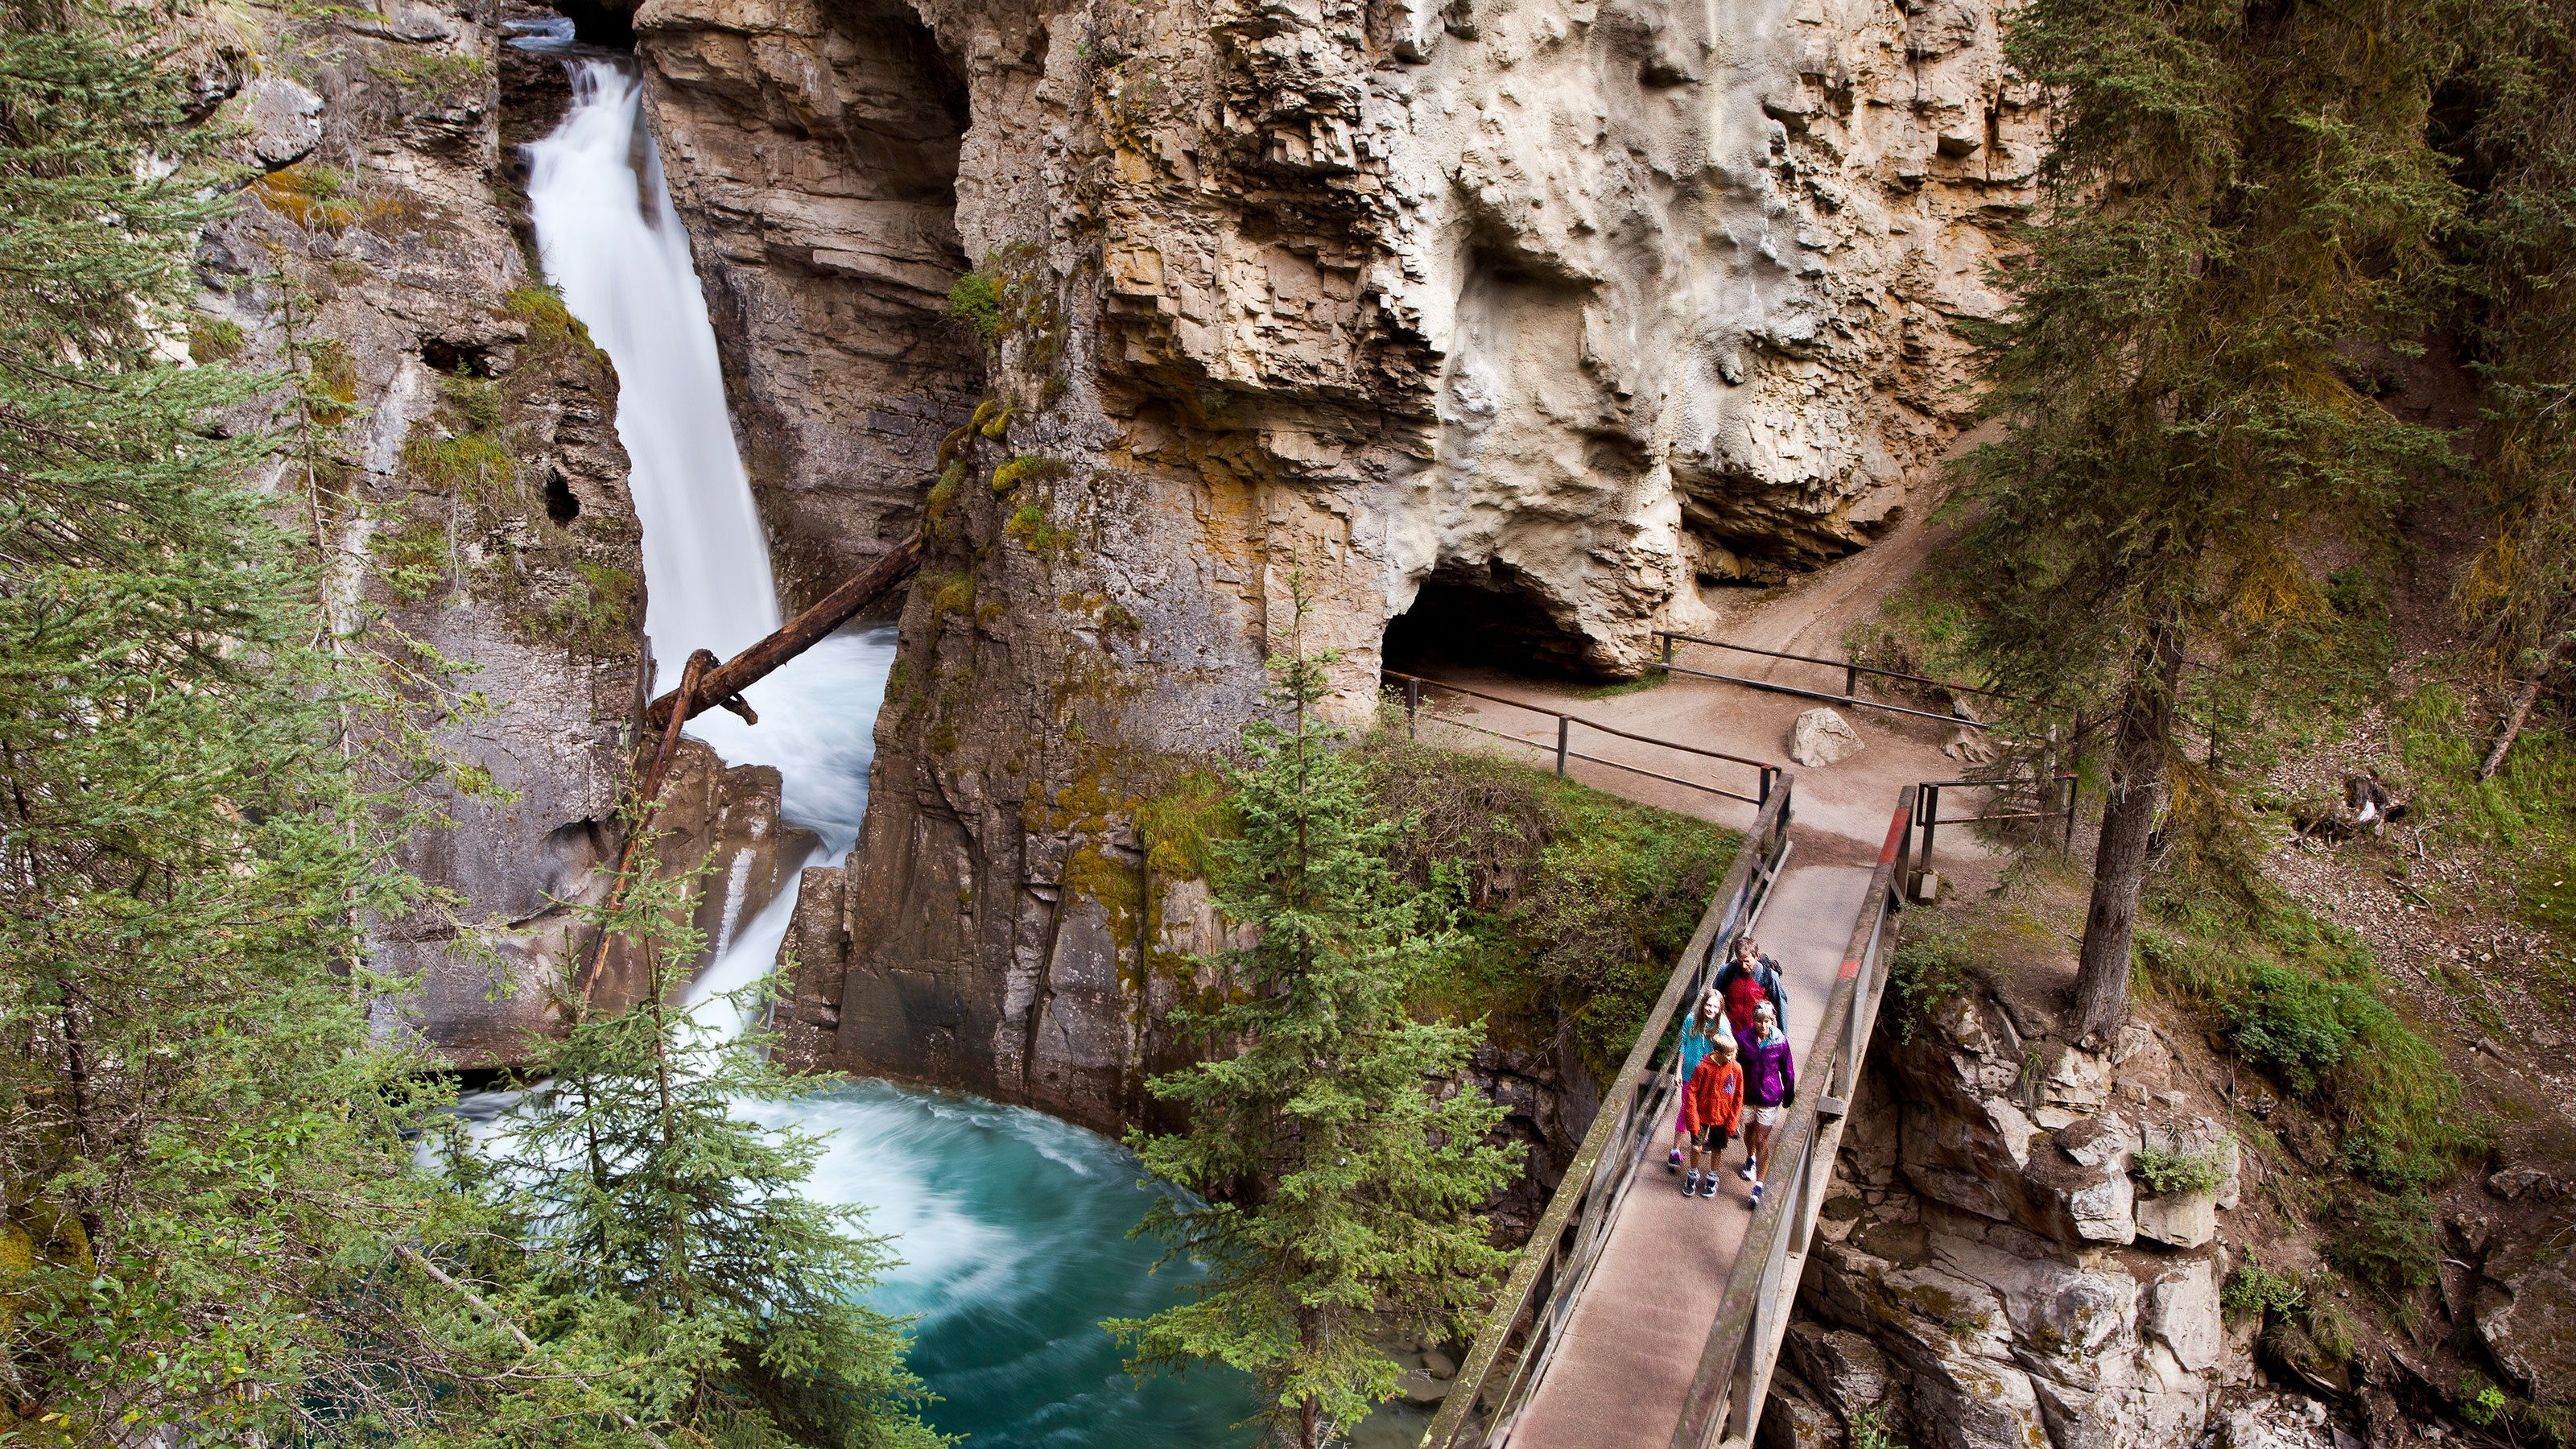 Group walking past a scenic waterfall in Banff